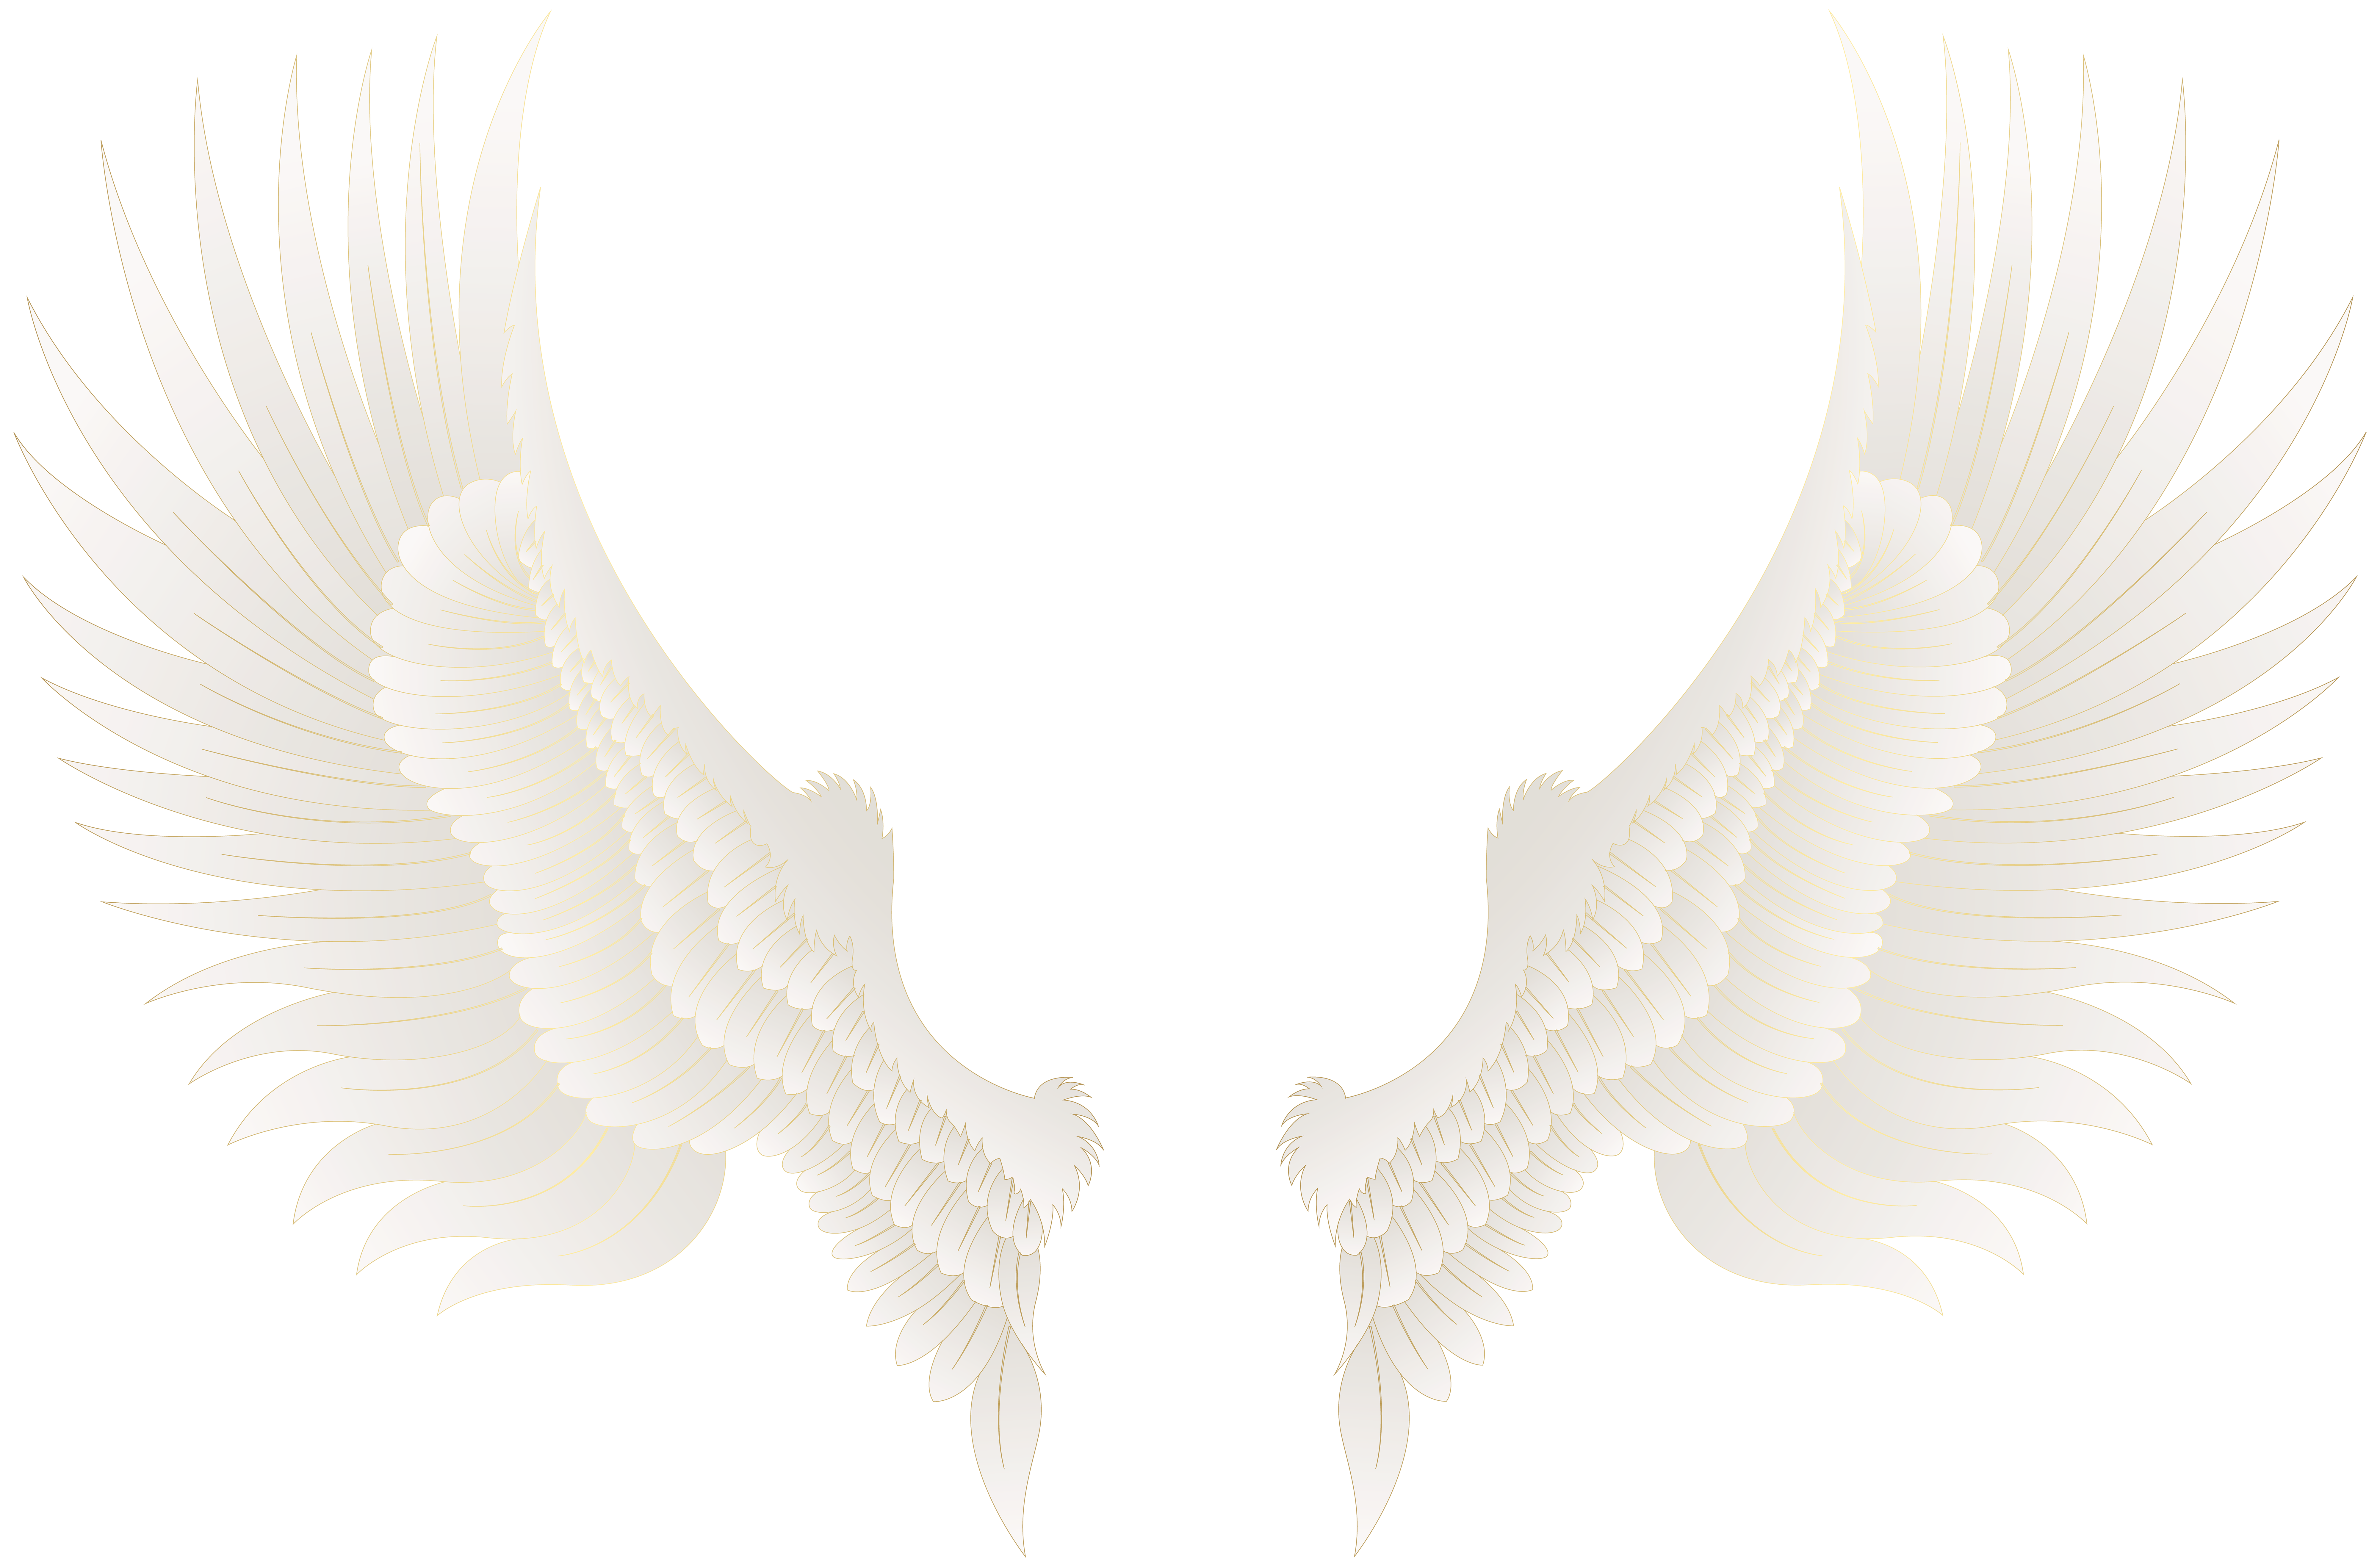 Eyelash clipart gold. White wings png clip